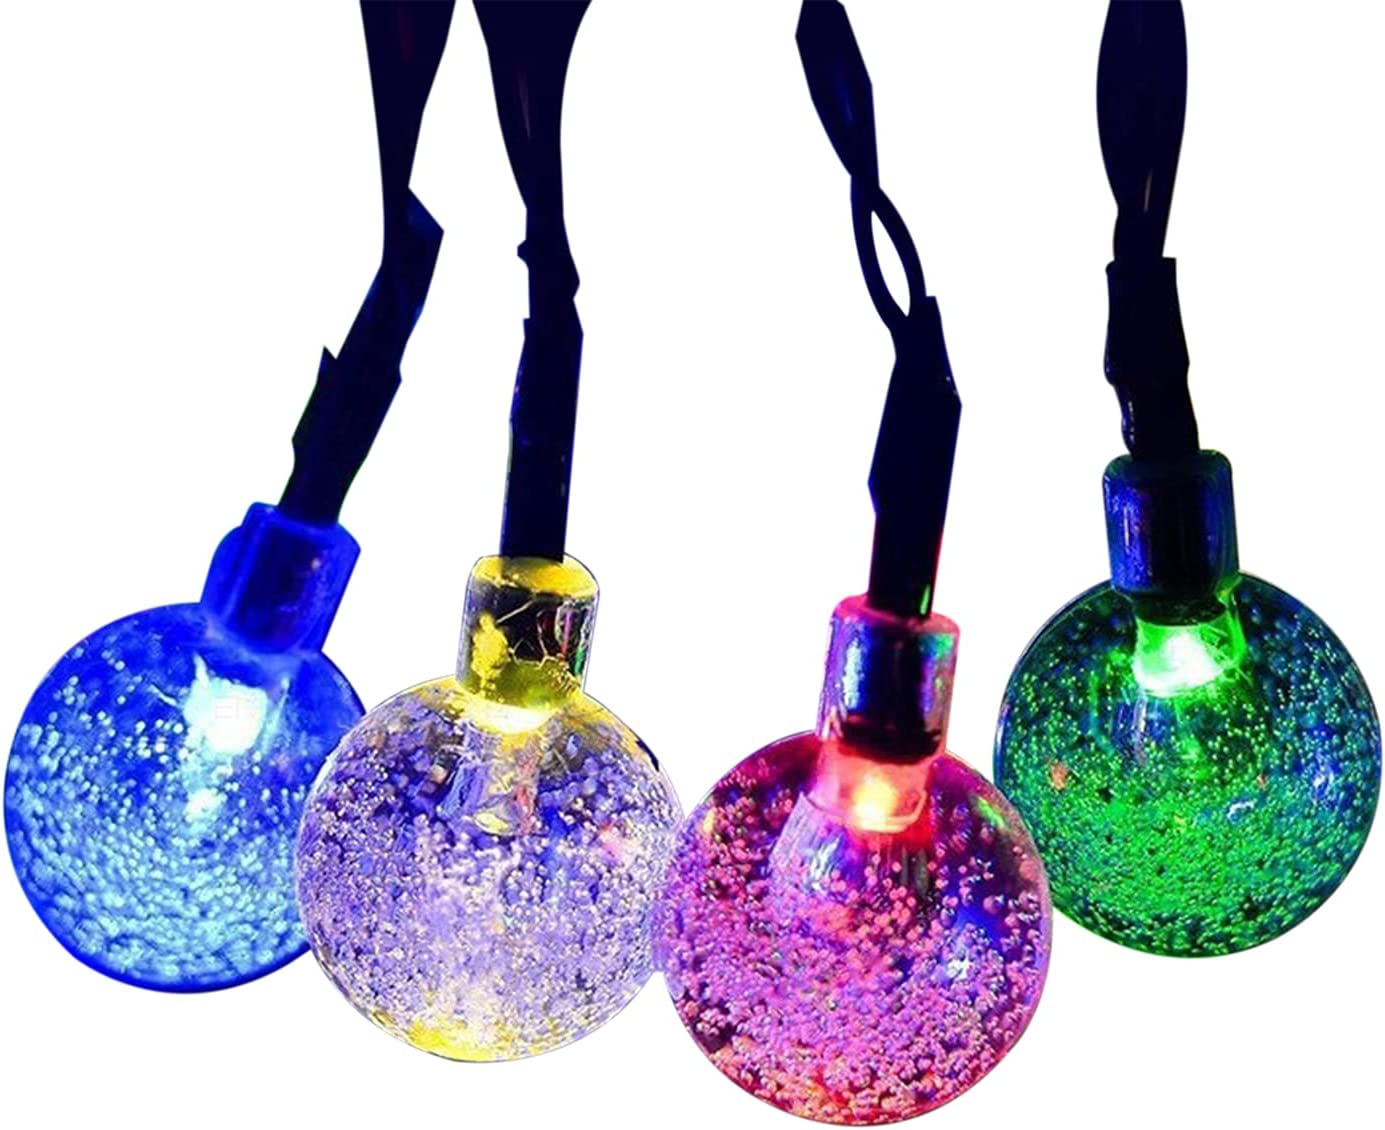 Leyeet Solar String Lights Waterproof Powered Outdoor LED free Latest item shipping